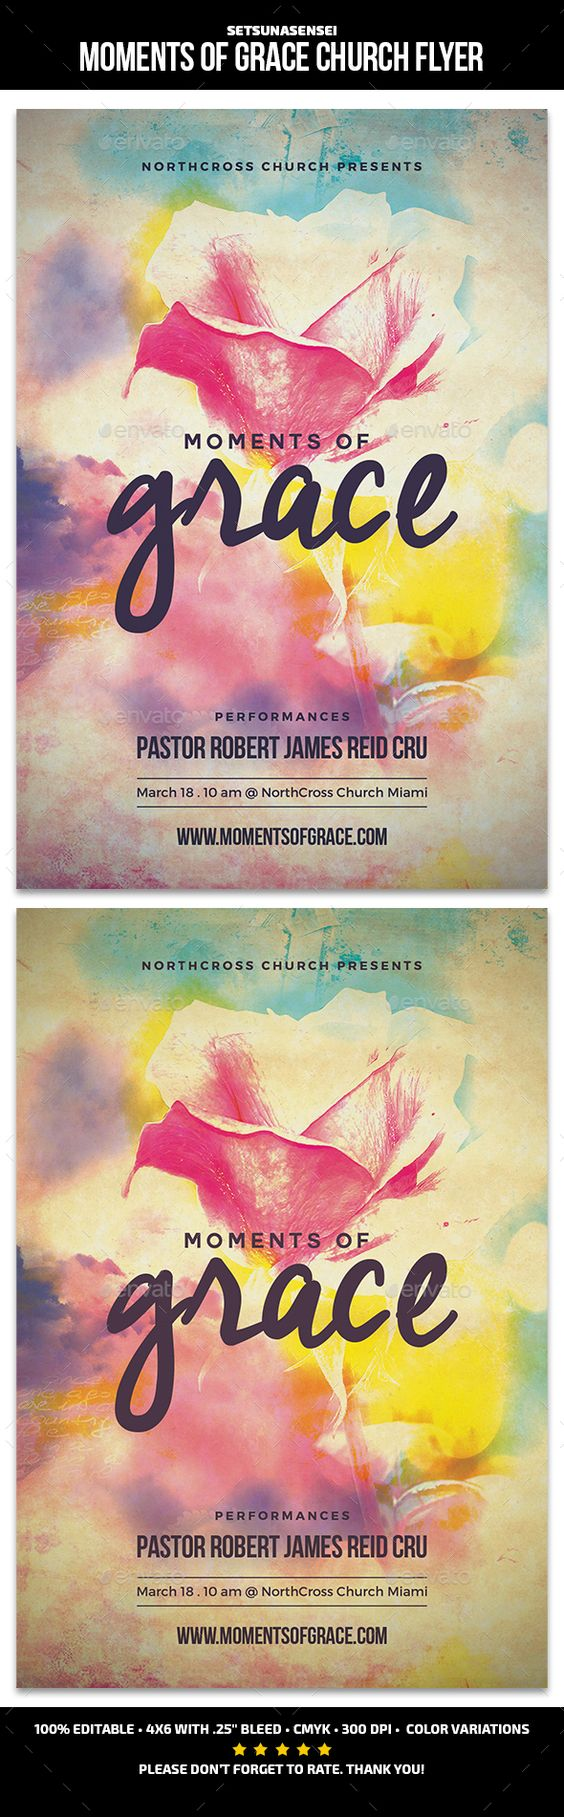 moments of grace church flyer fonts ocean paintings and flyer moments of grace church flyer template psd here graphicriver